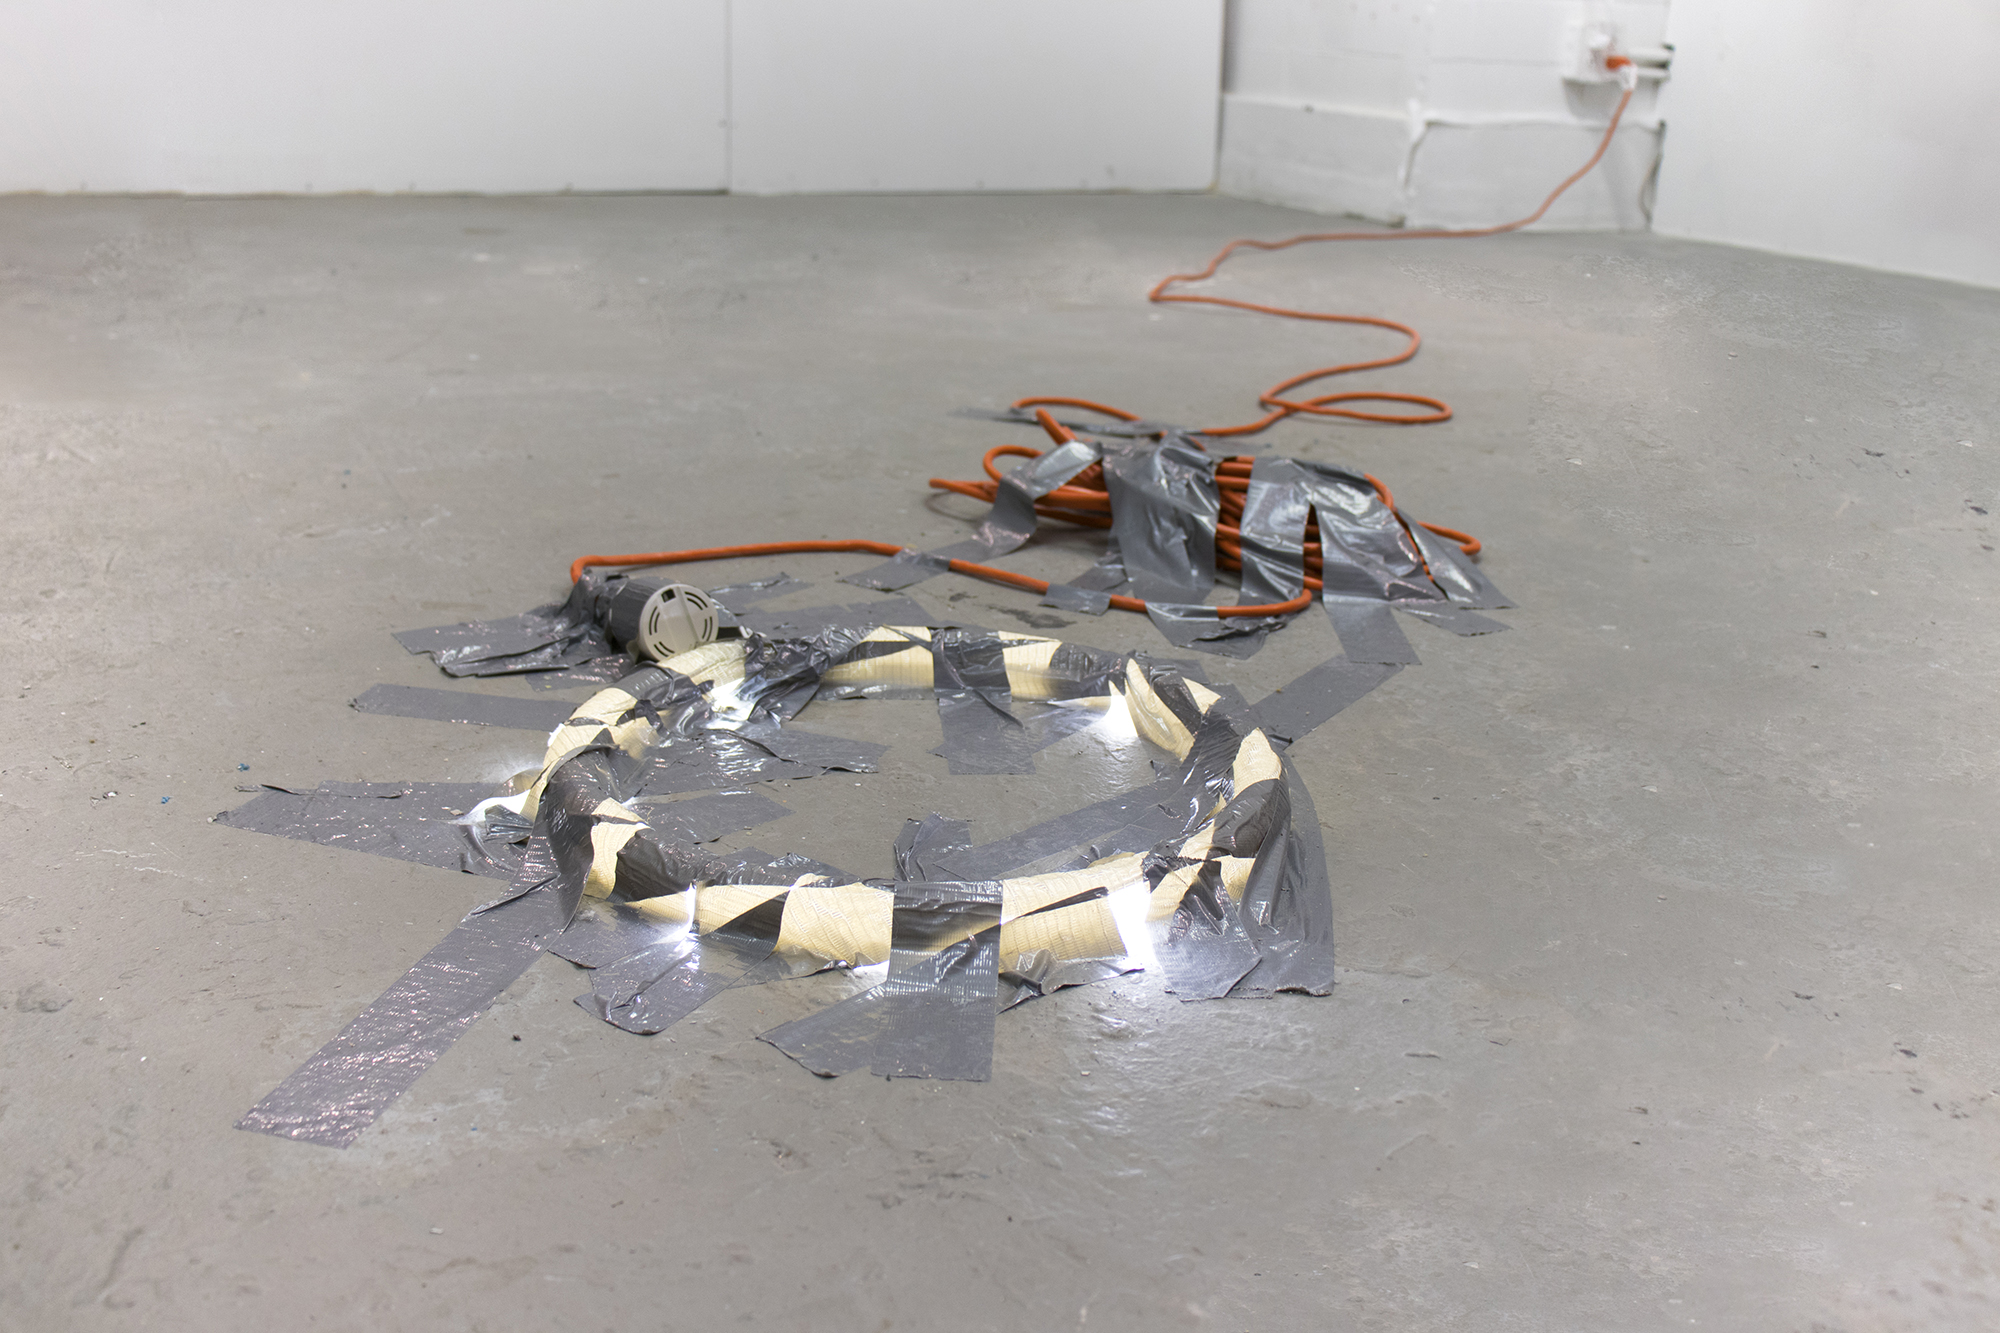 Bat-Ami Rivlin,  Untitled (DUCT TAPE, LED, CORD, BALLAST) , 2019. Duct tape, LED circular light bulb, extension cord, ballast. Image courtesy of the artist.